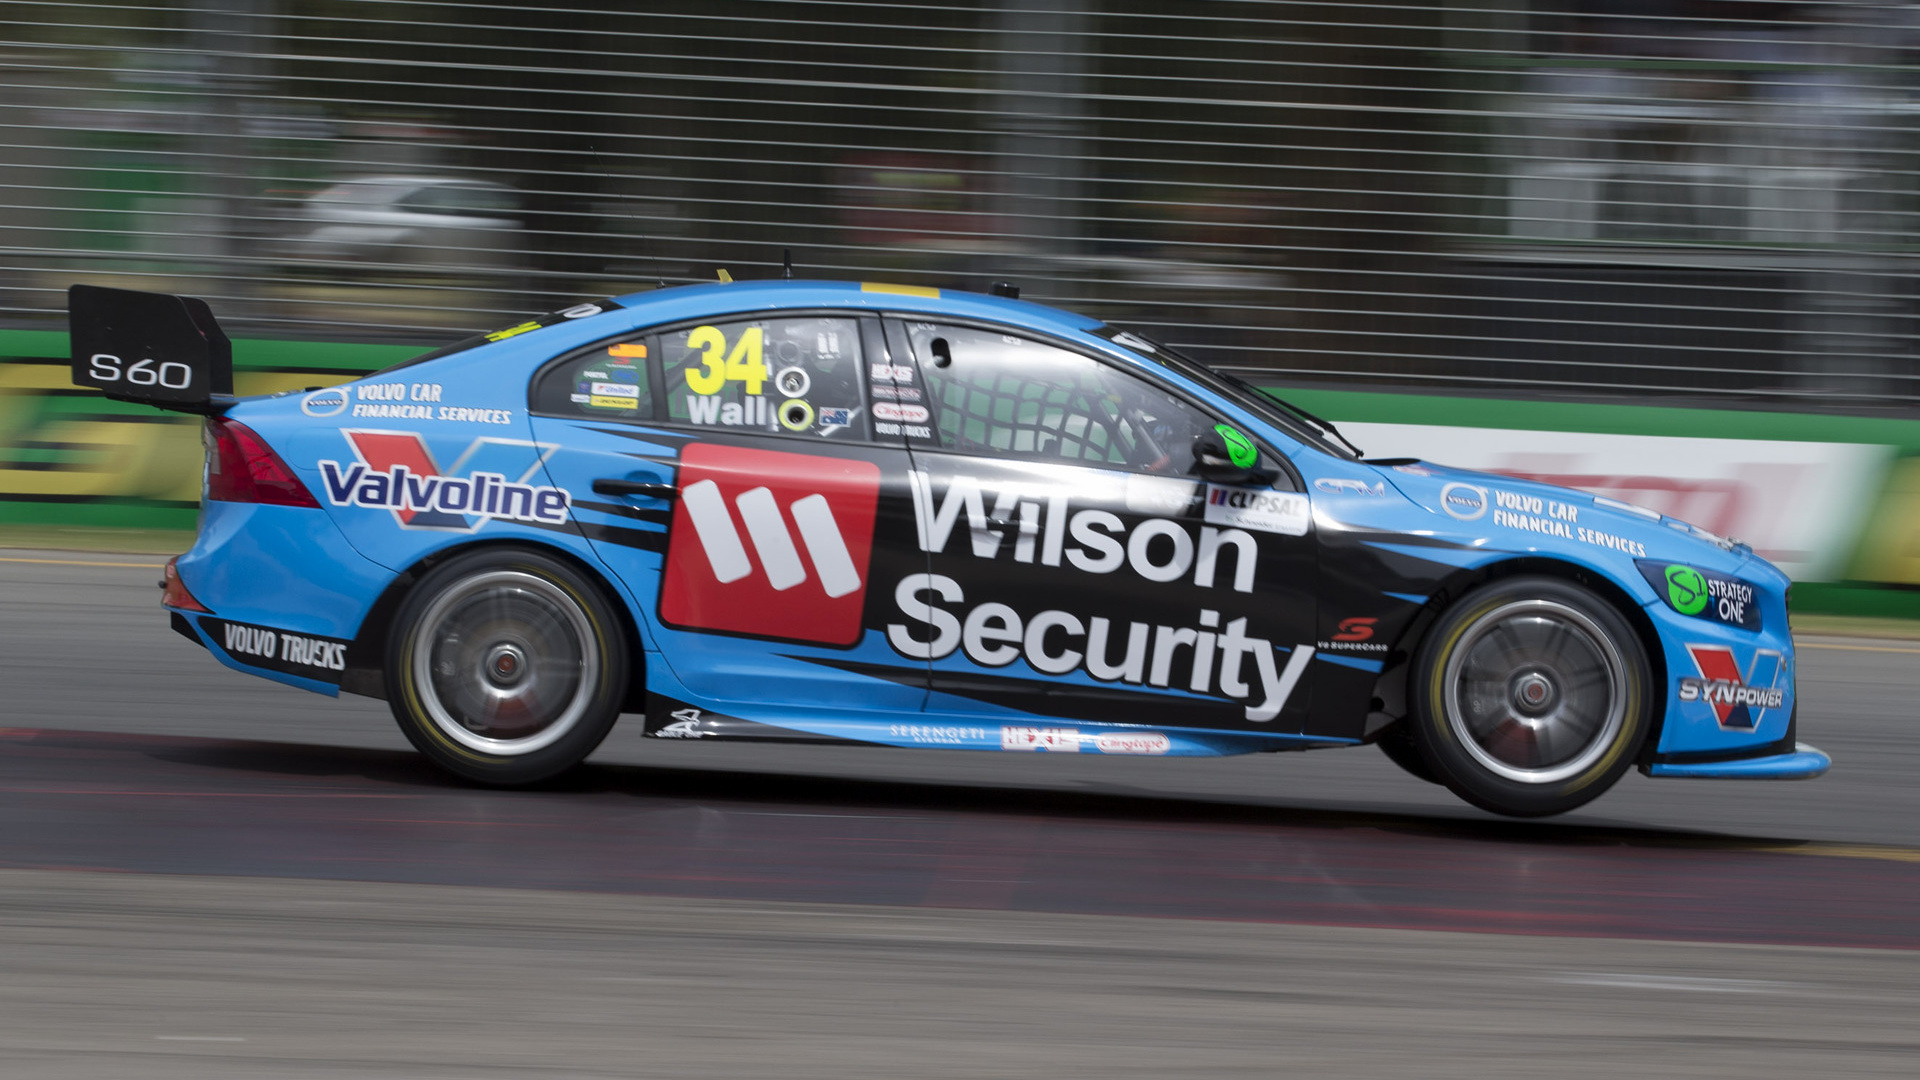 Volvo S60 V8 Supercar (2014) Wallpapers and HD Images ...